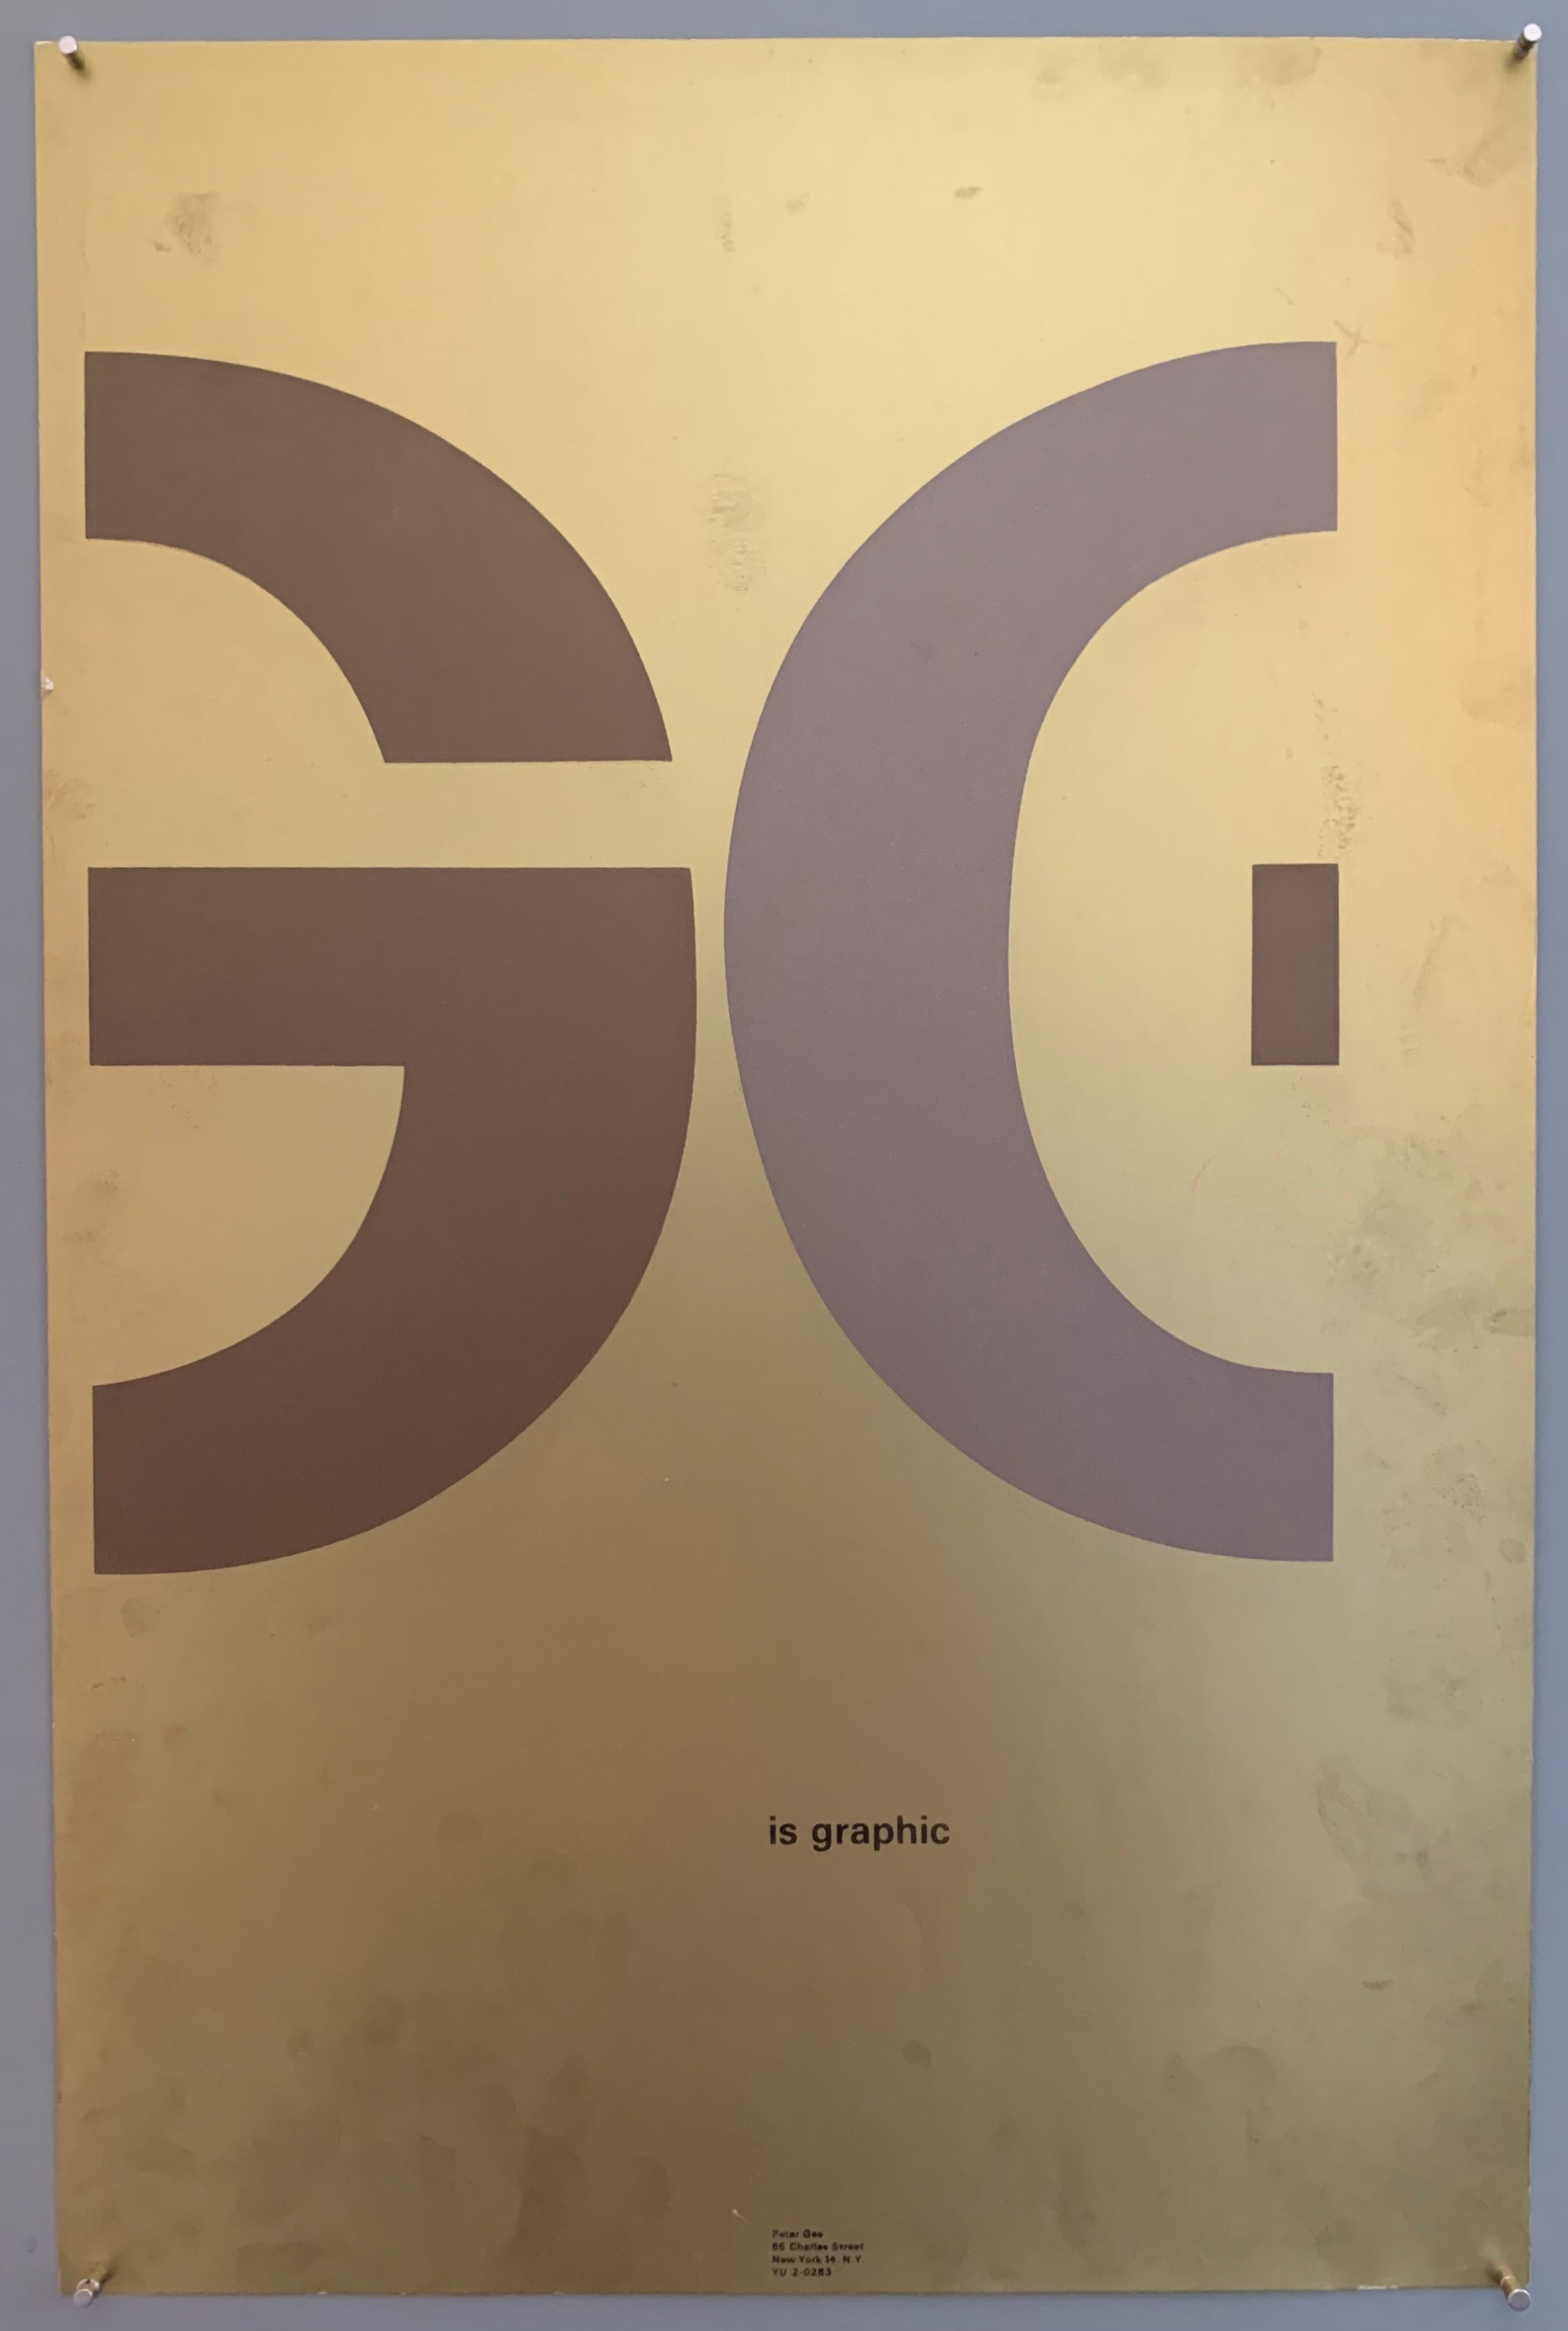 "A mostly plain paper has G and part of an E written across the middle in huge font. ""is graphic"" is written below in smaller font, and the studio address is written much smaller towards the bottom. The colors used in this are brown, grey, and a metallic gold paper."